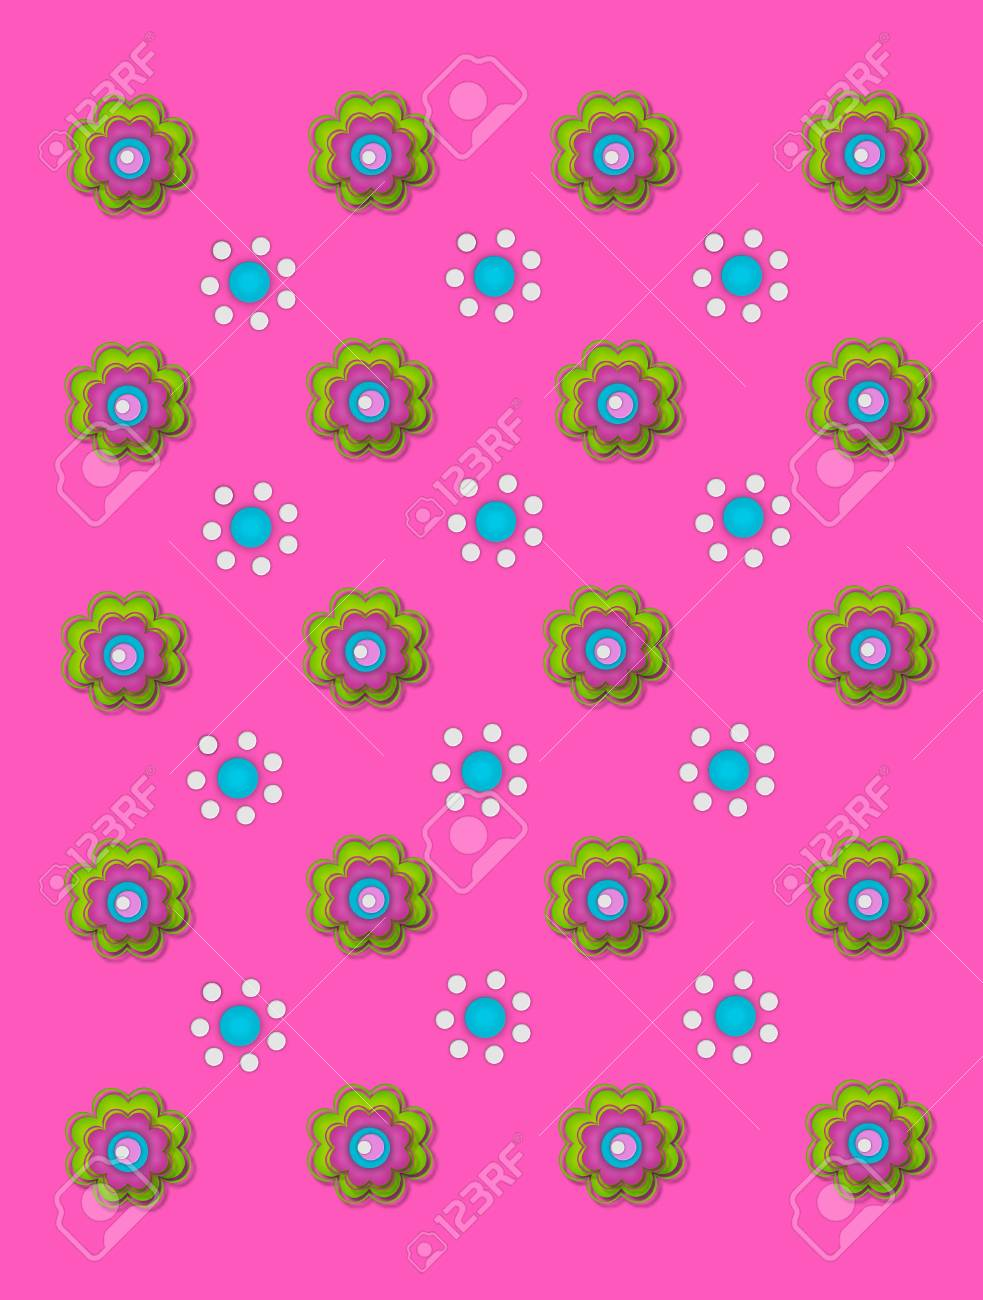 Two flower designs decorate bright pink background.  One flower is made up of green, pink and aqua layers.  The other flower is made up of white and aqua polka dots. Stock Photo - 17126512